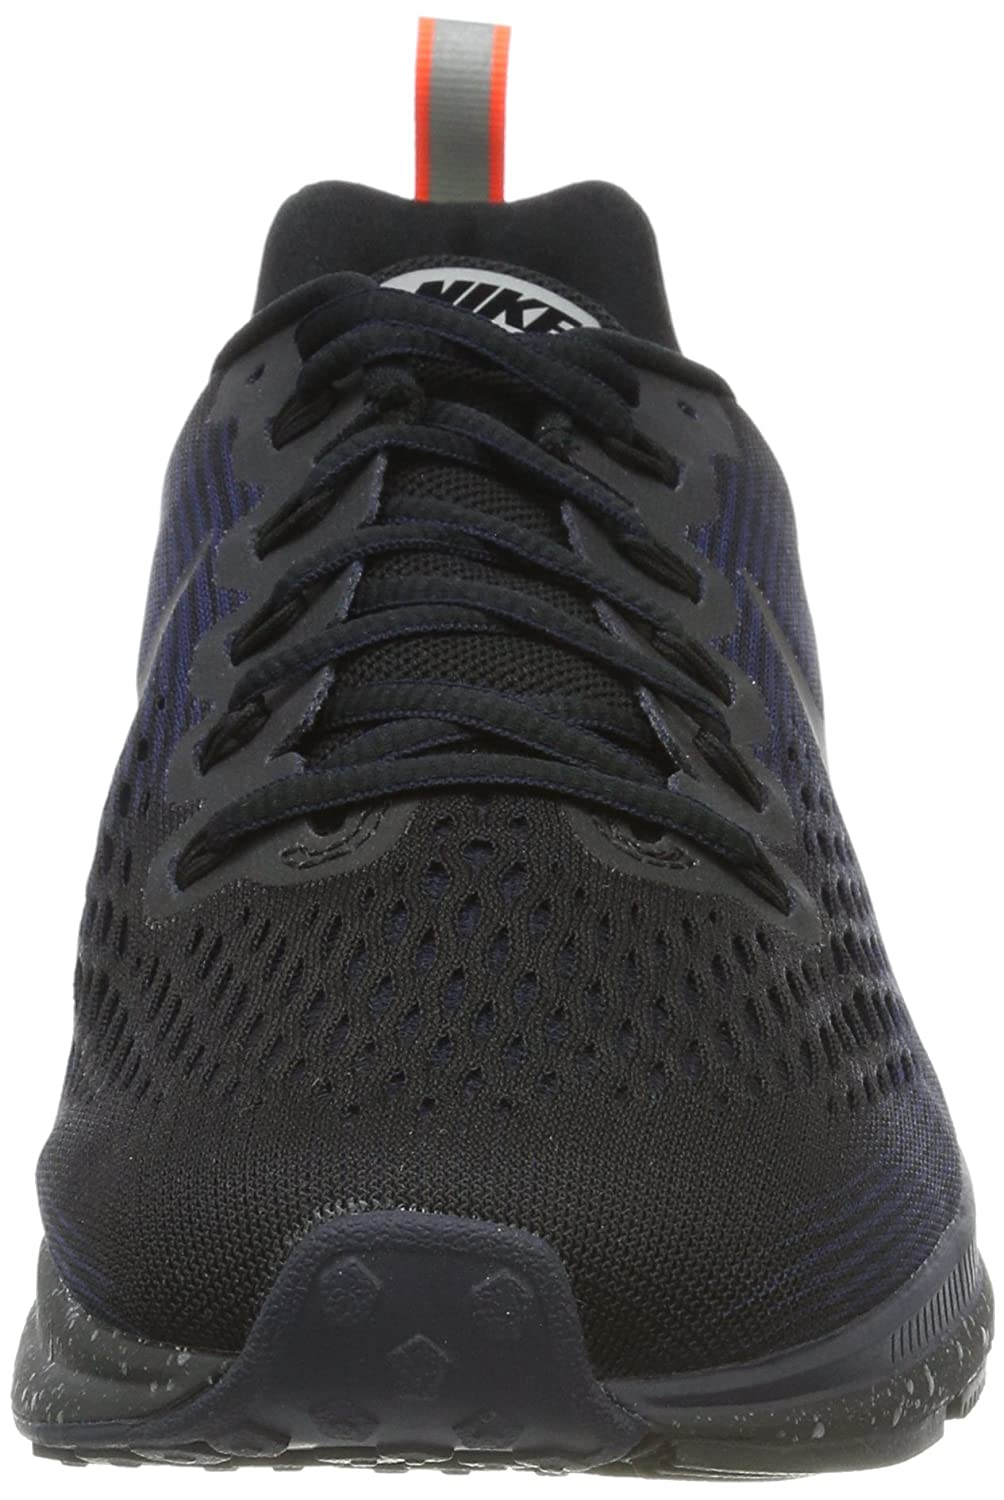 innovative design a320b 08a1d Nike Men s Air Zoom Pegasus 34 Shield Fitness Shoes Black  Amazon.co.uk   Shoes   Bags